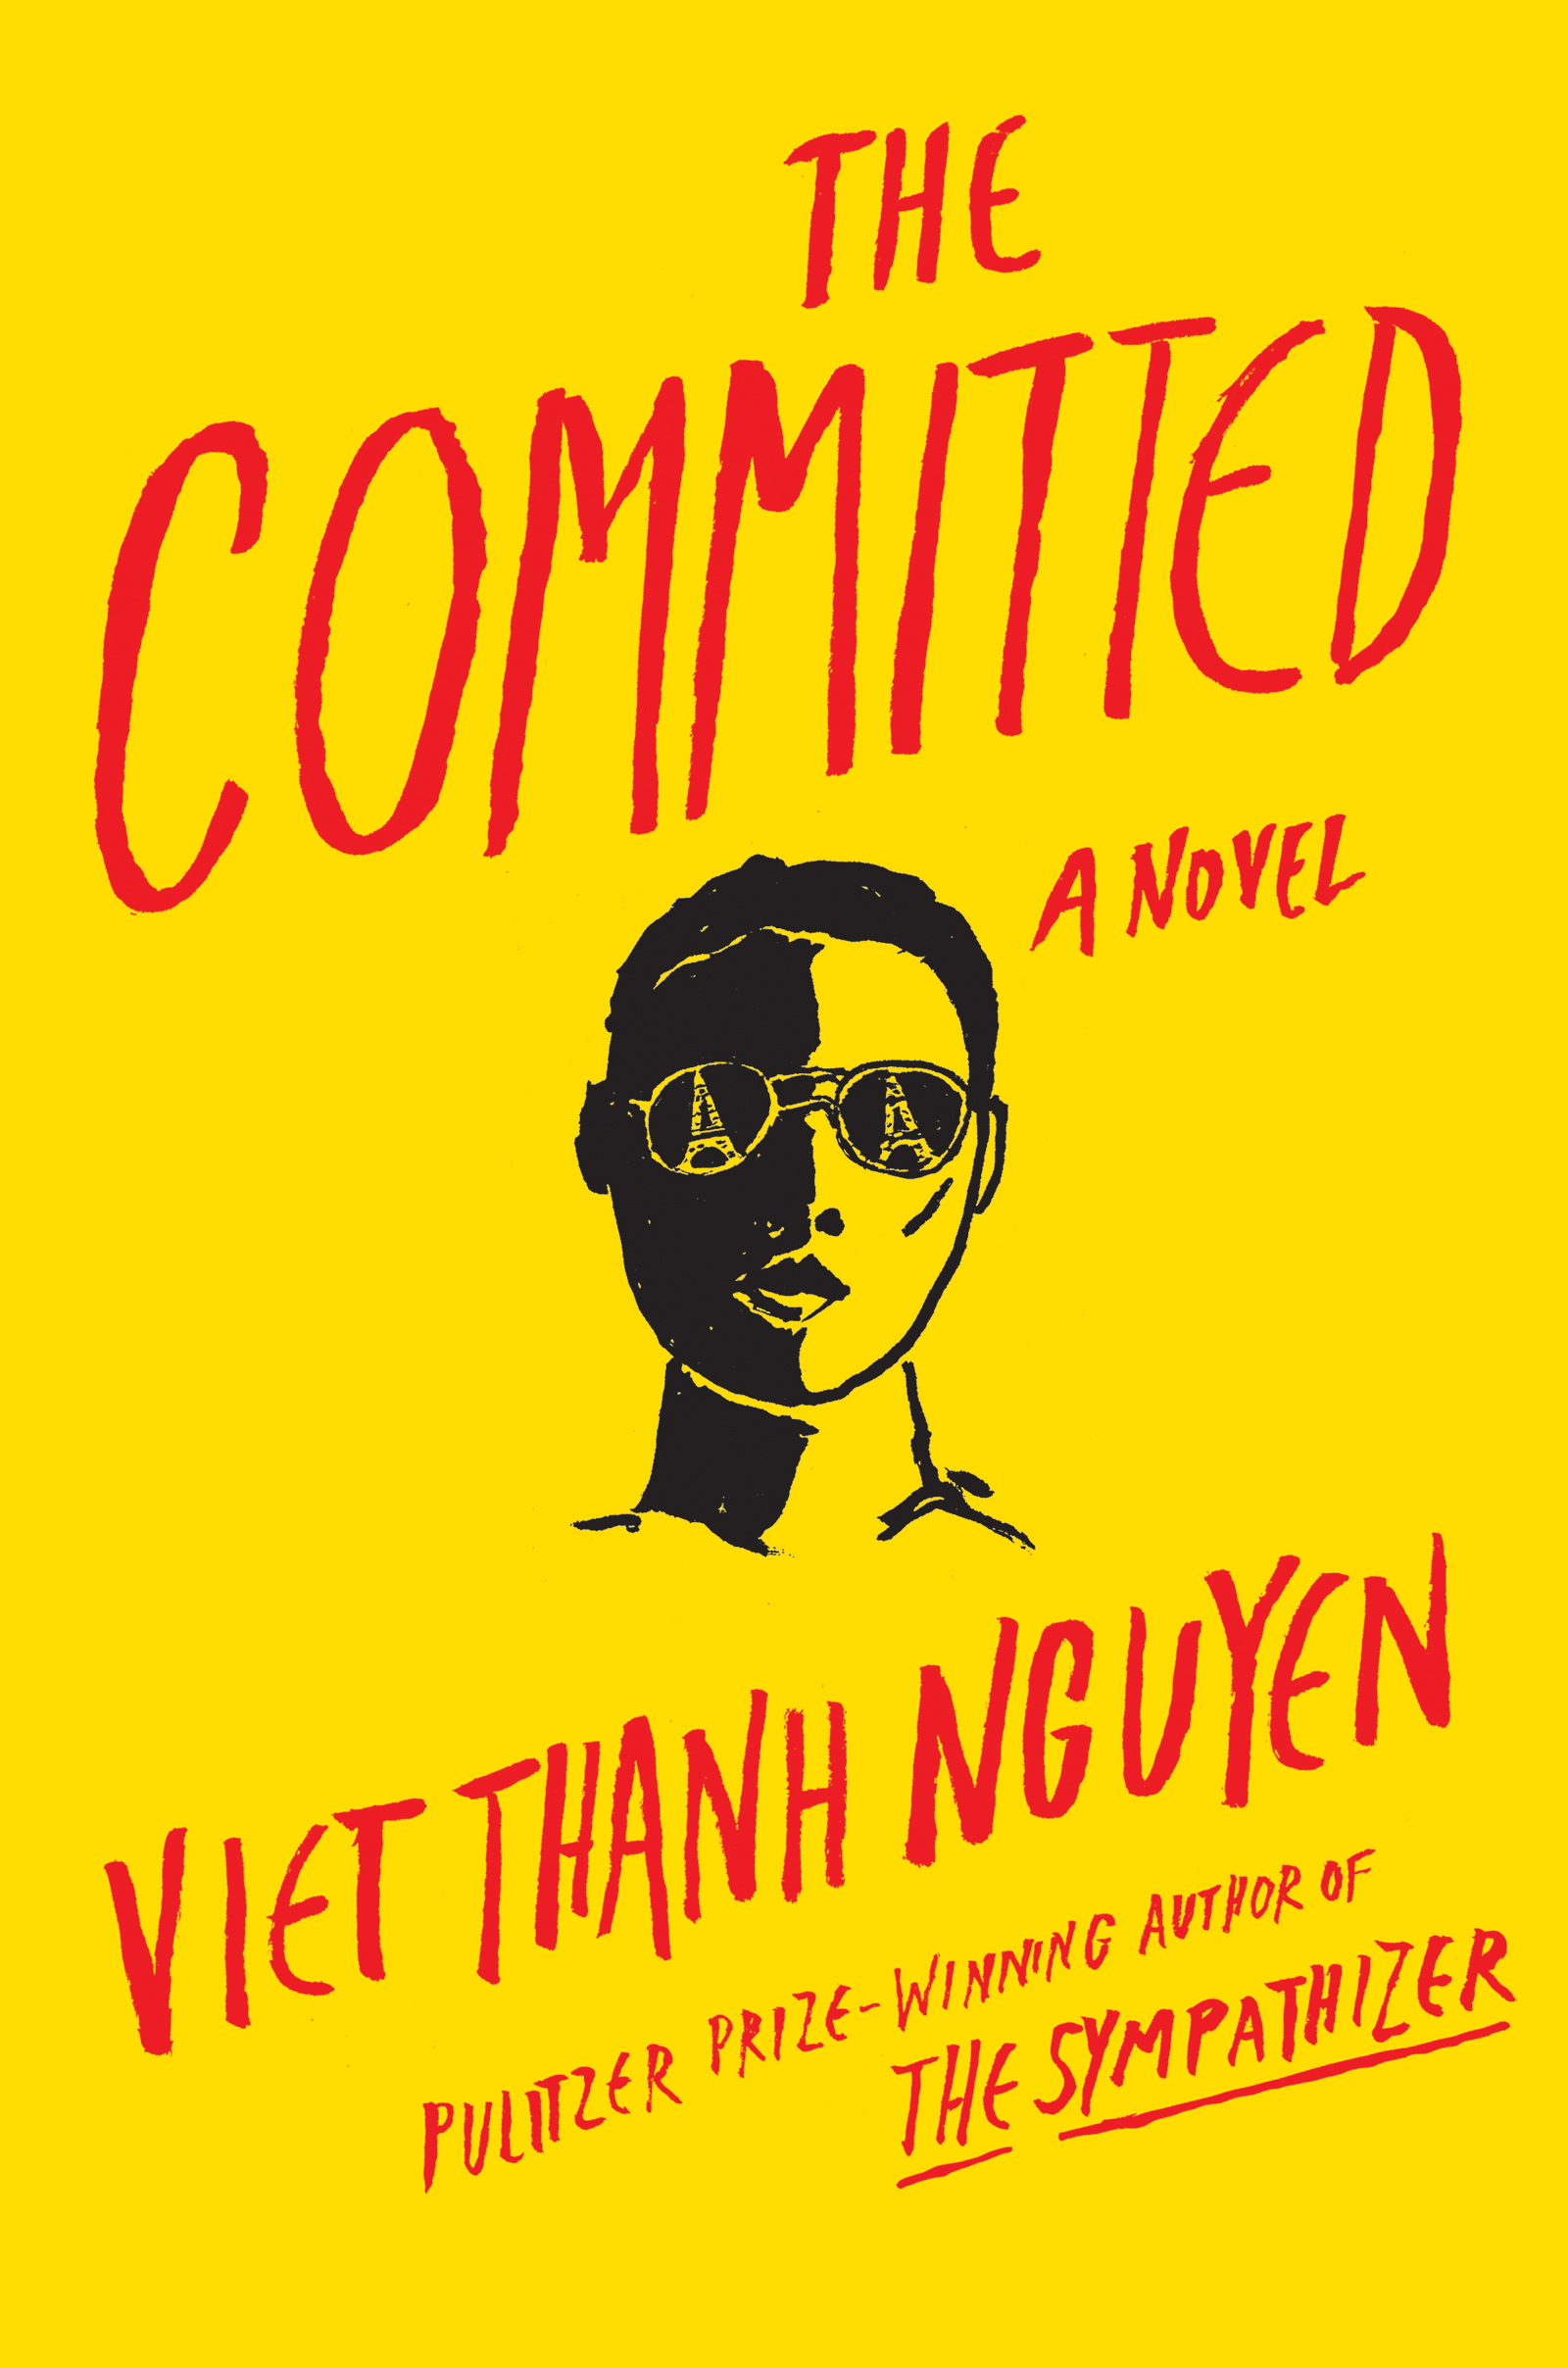 The Committed by Viet Thanh Nguyen (Grove Atlantic)